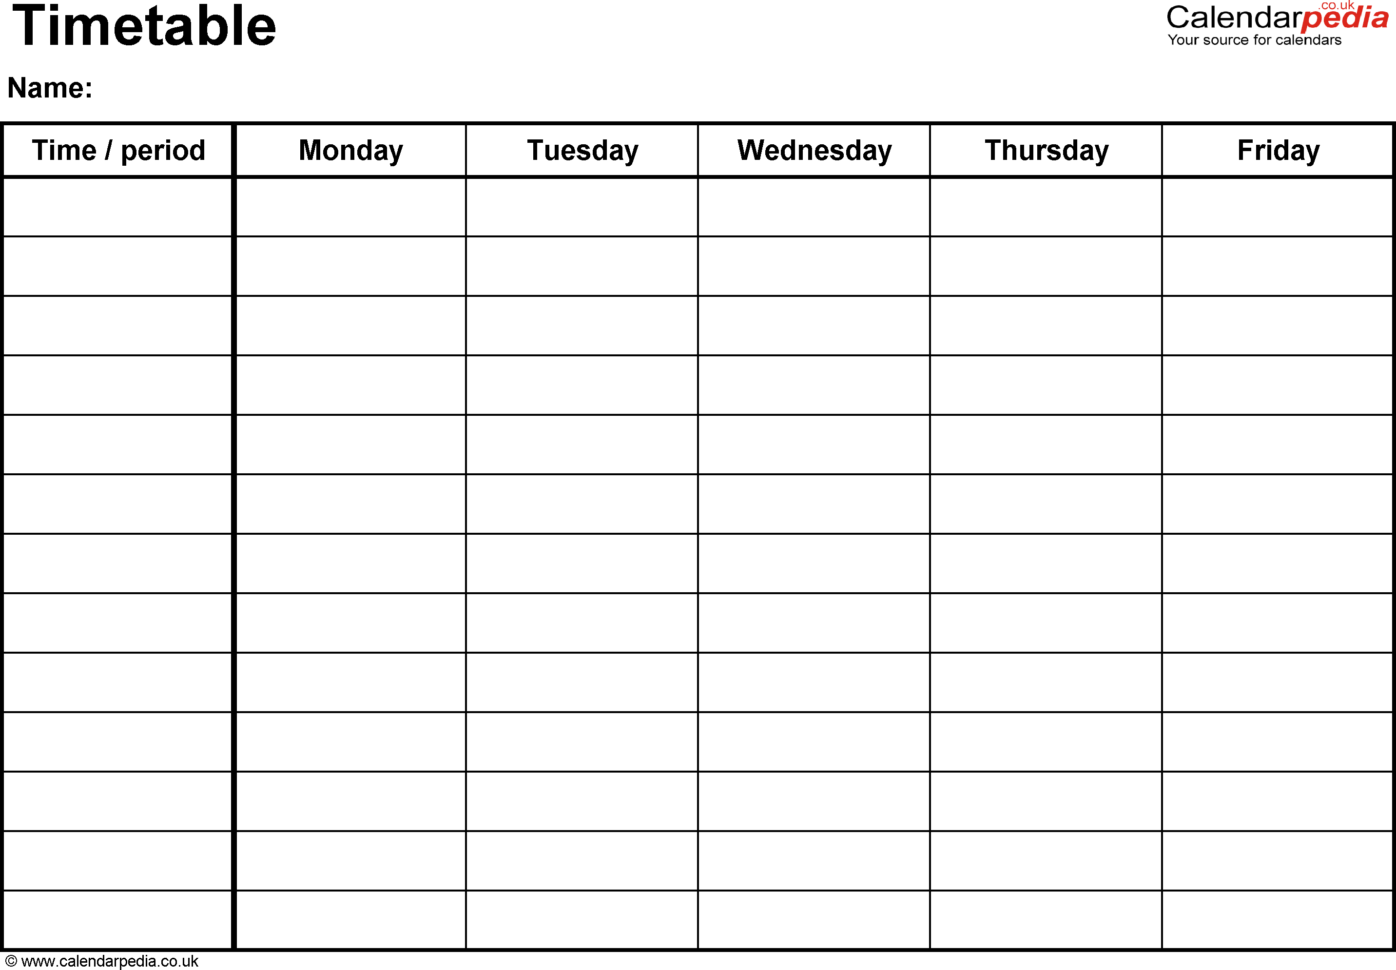 Timetables As Free Printable Templates For Microsoft Word